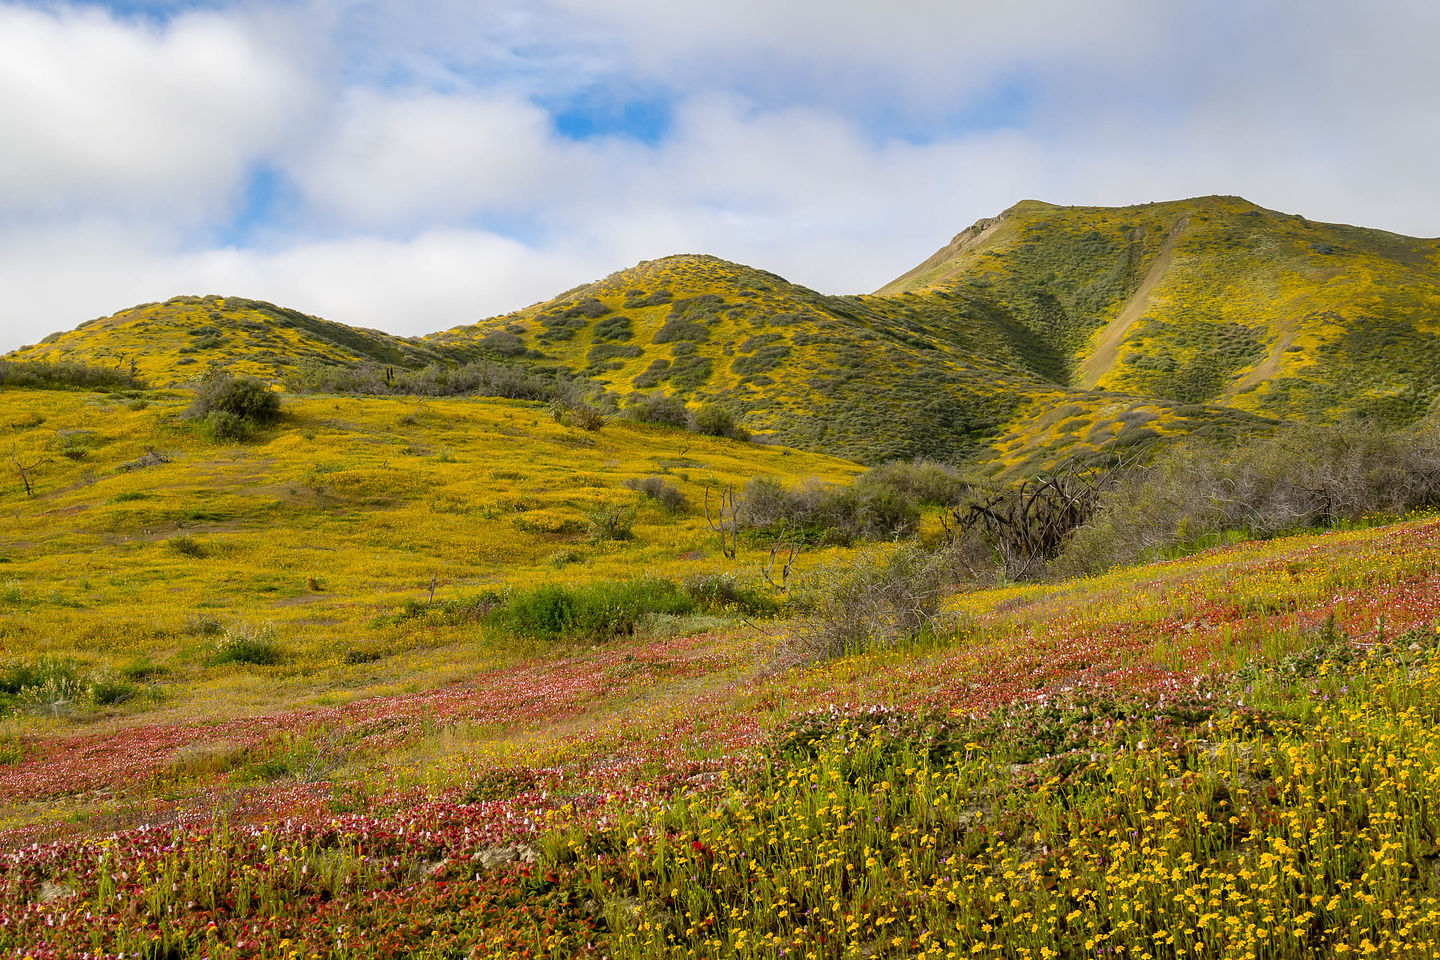 Wildflower bloom along Mexico 1